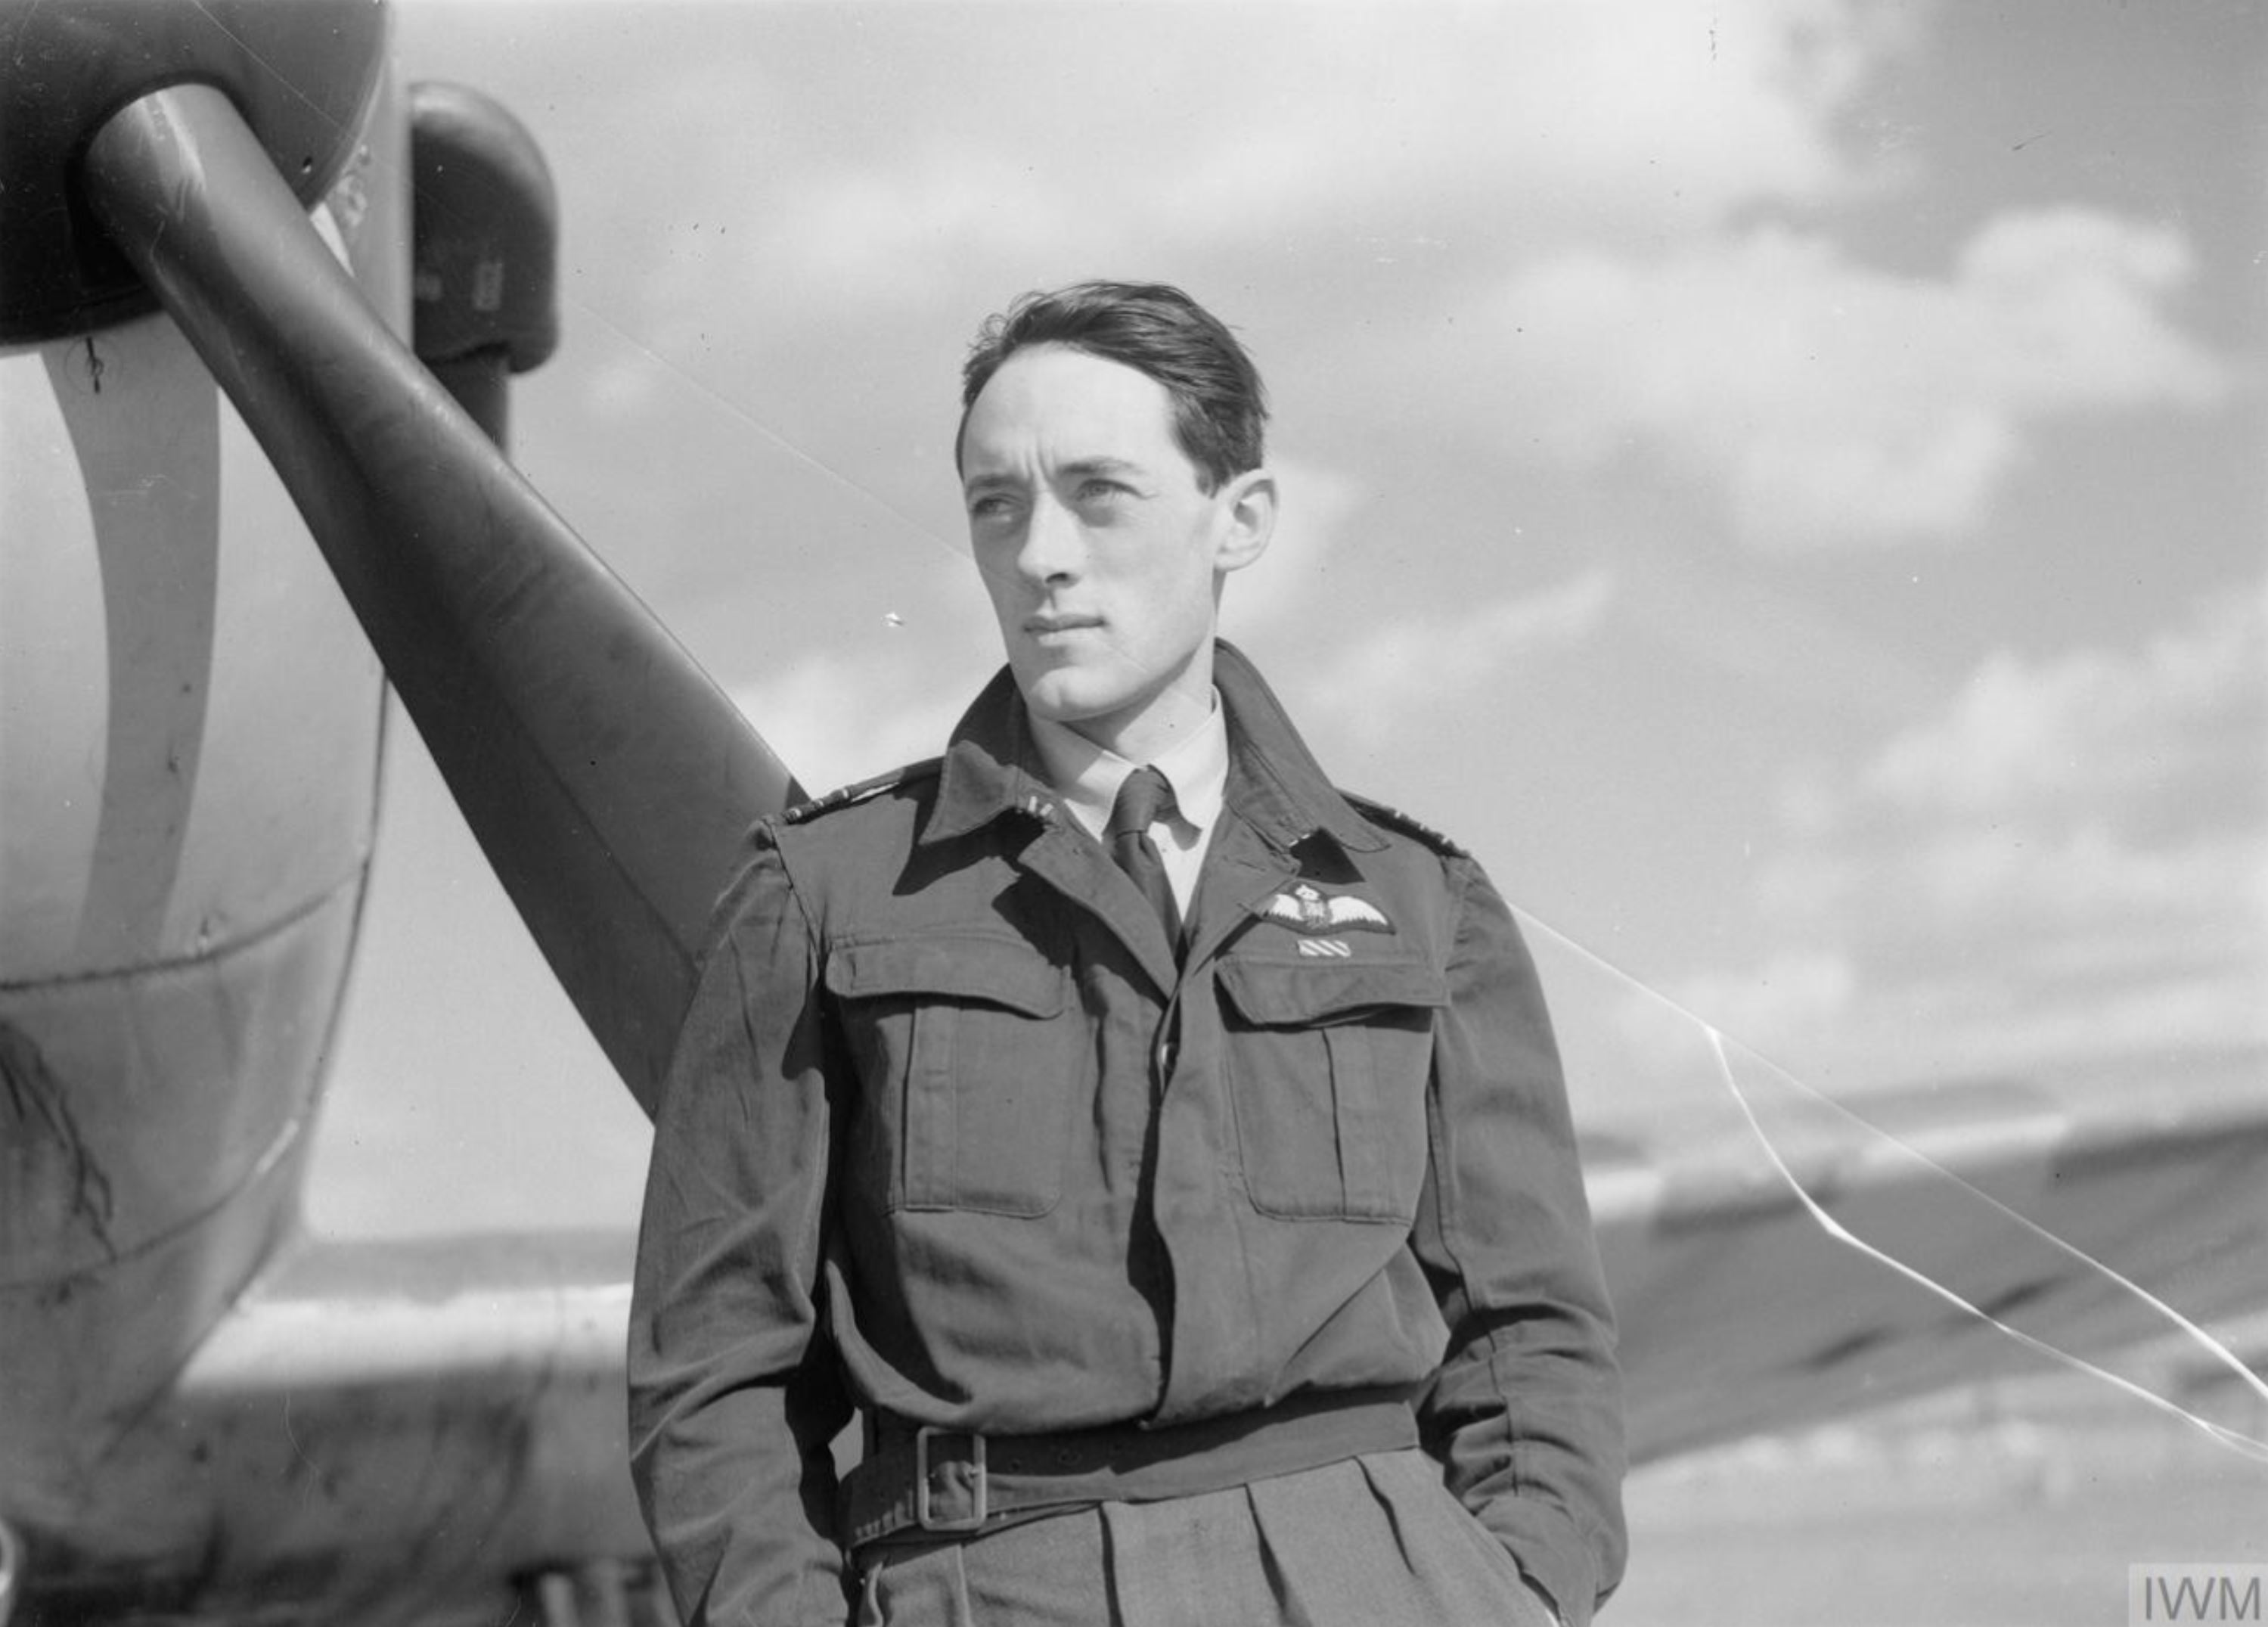 Aircrew RAF 19Sqn pilot BJE Sandy Lane at Duxford Cambridgeshire 1940 IWM CH1391